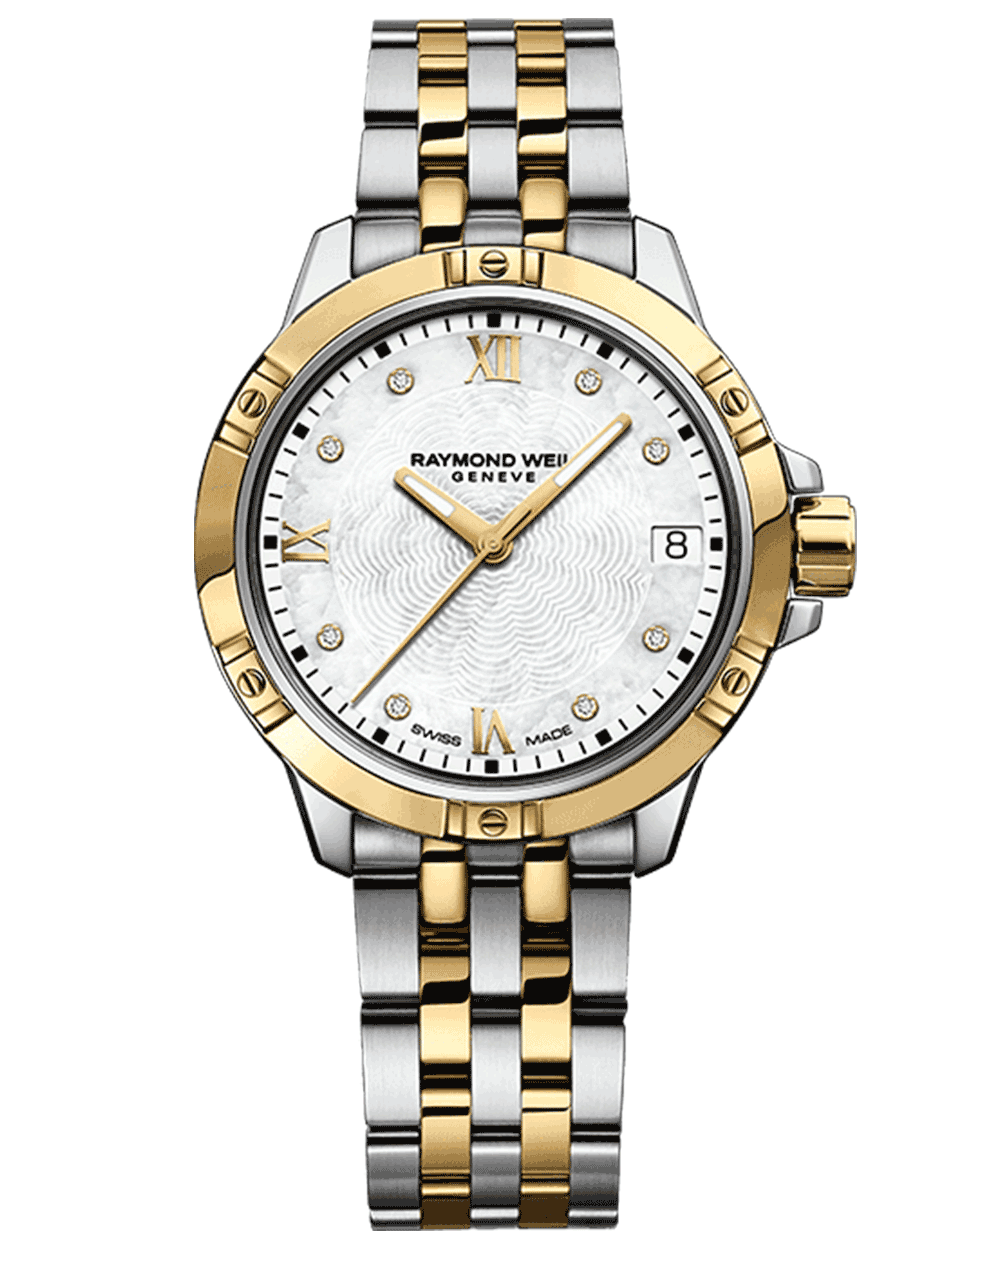 RAYMOND WEIL Geneve Gold Two tone Stainless Steel Quartz Ladies Luxury Watch